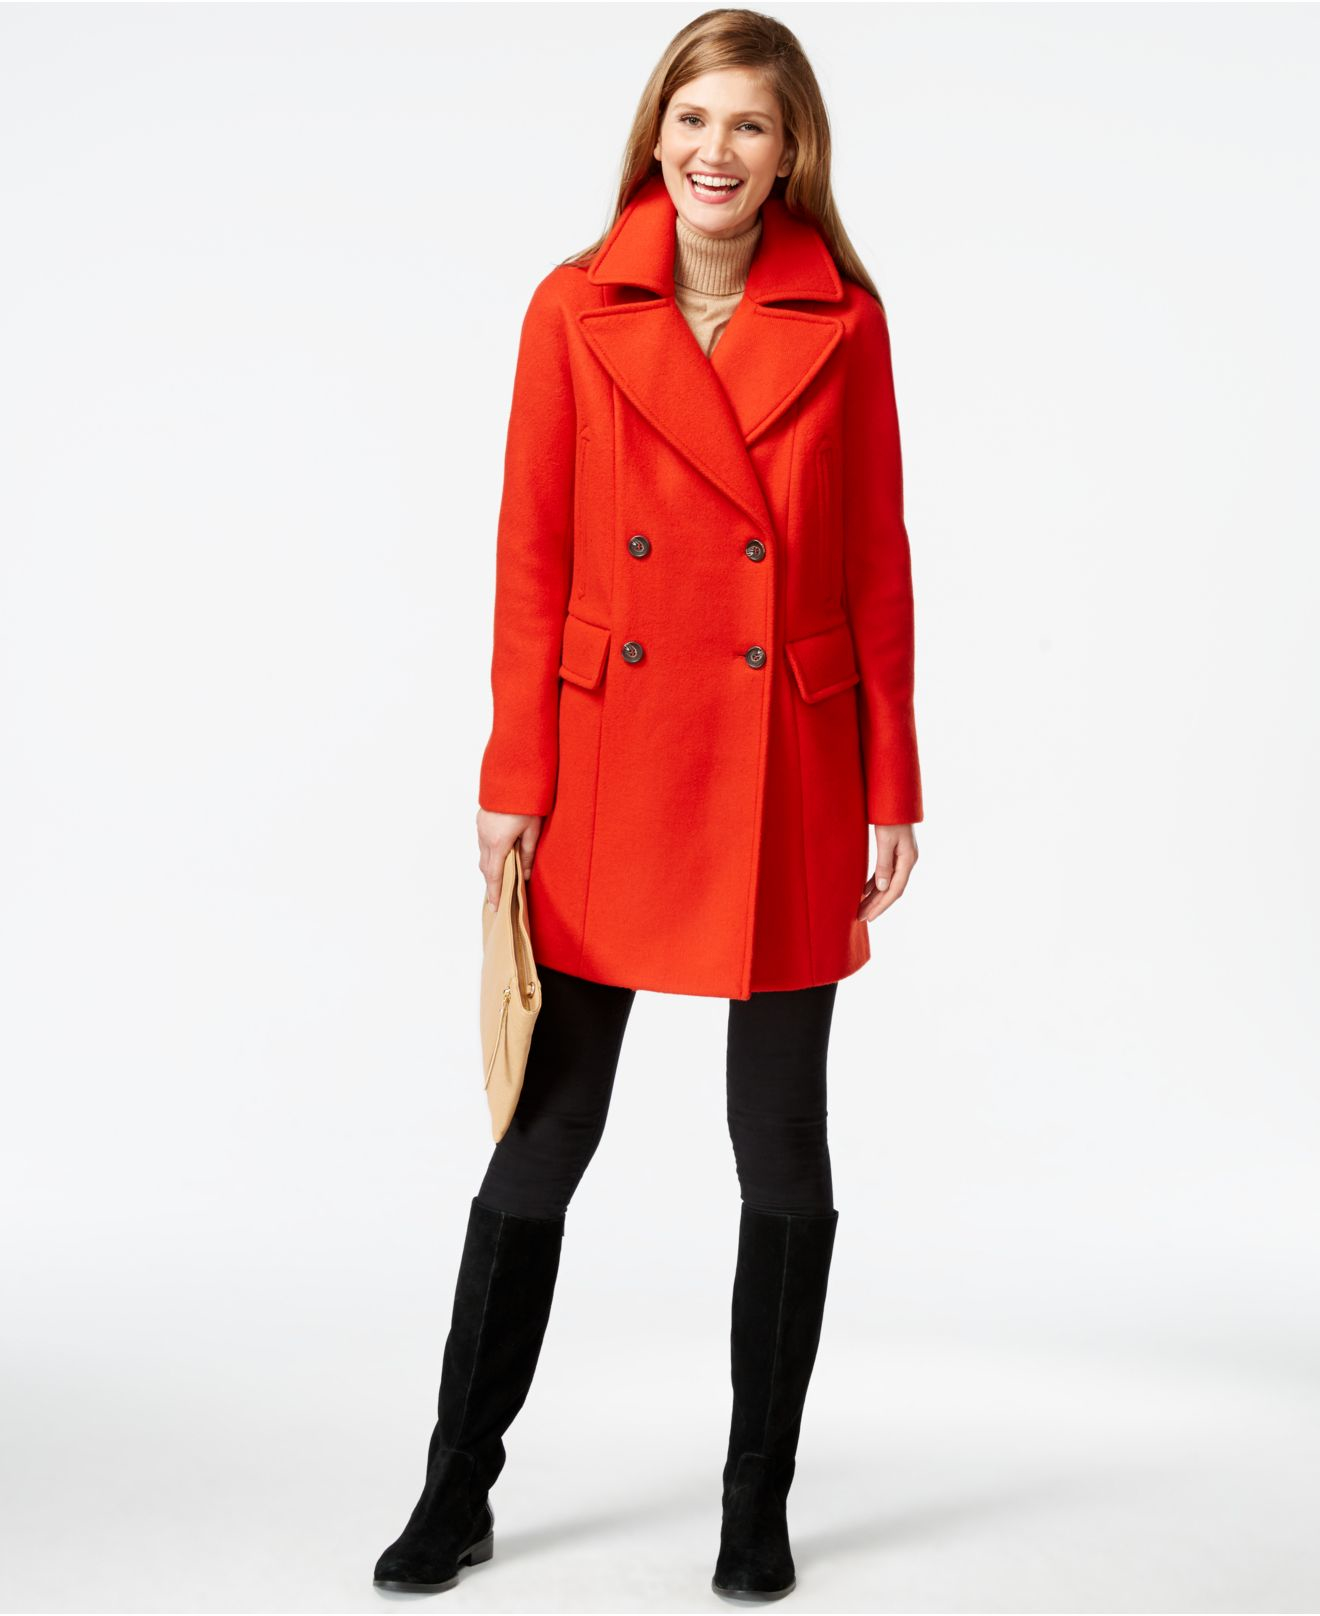 Red Pea Coats For Women - Tradingbasis